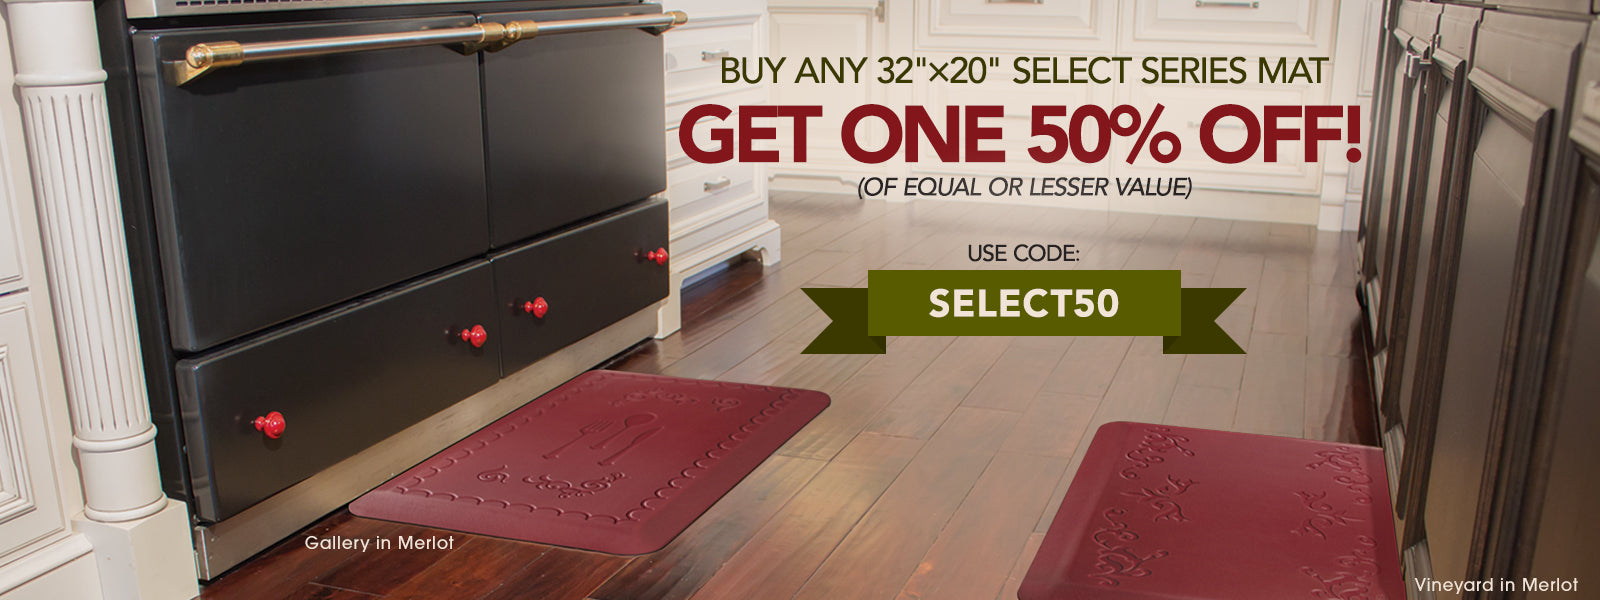 "Buy any 32""x20"" Select Series Mat & Get One 50% Off! (of equal or lesser value)"